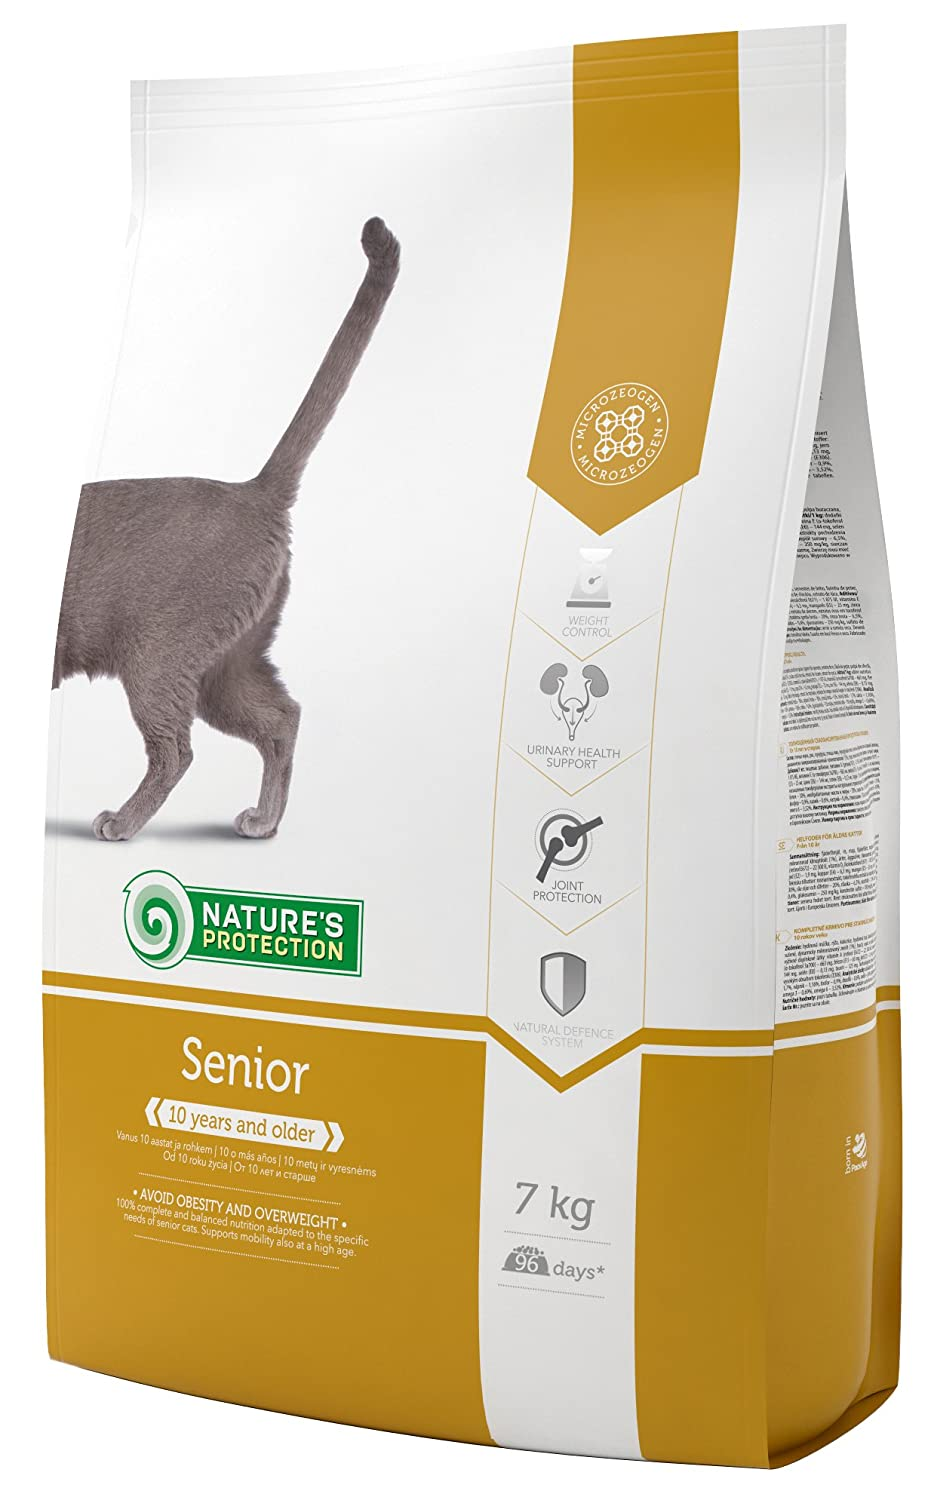 Nature's Predection Senior Pack of 1 x 15 Pounds